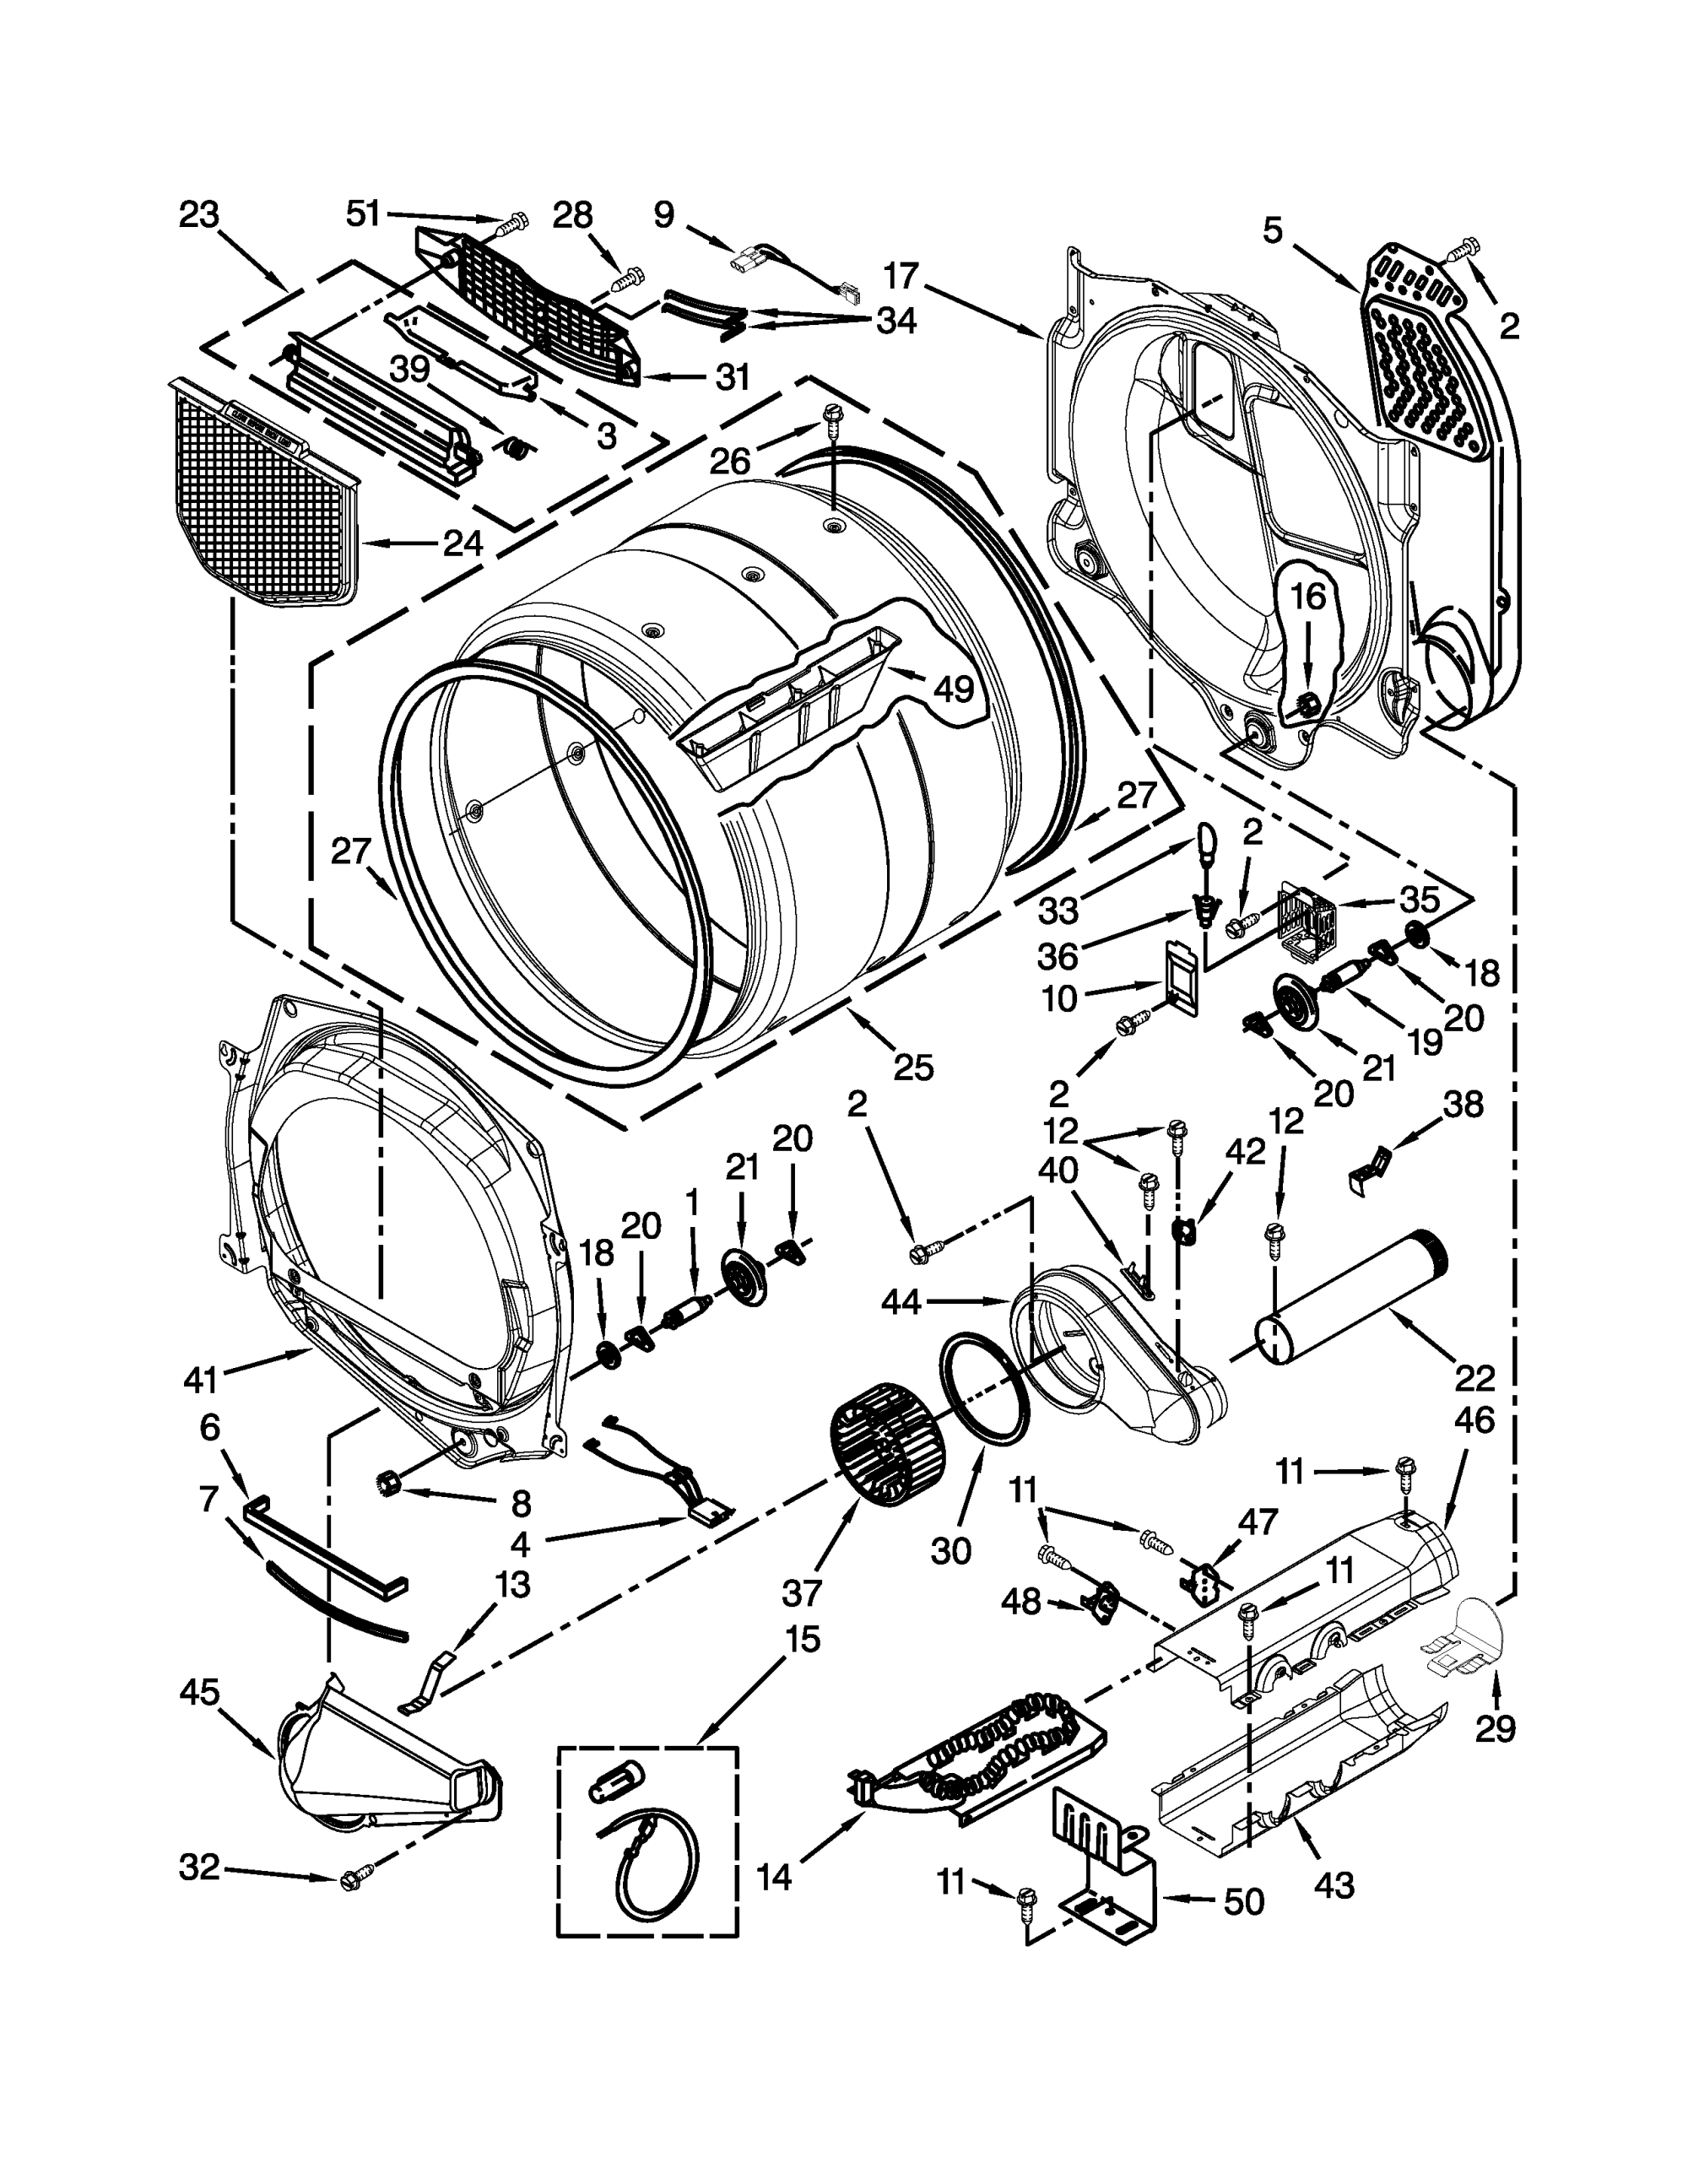 hight resolution of whirlpool duet dryer wiring schematic wiring diagram toolbox machine parts diagram besides whirlpool cabrio dryer parts